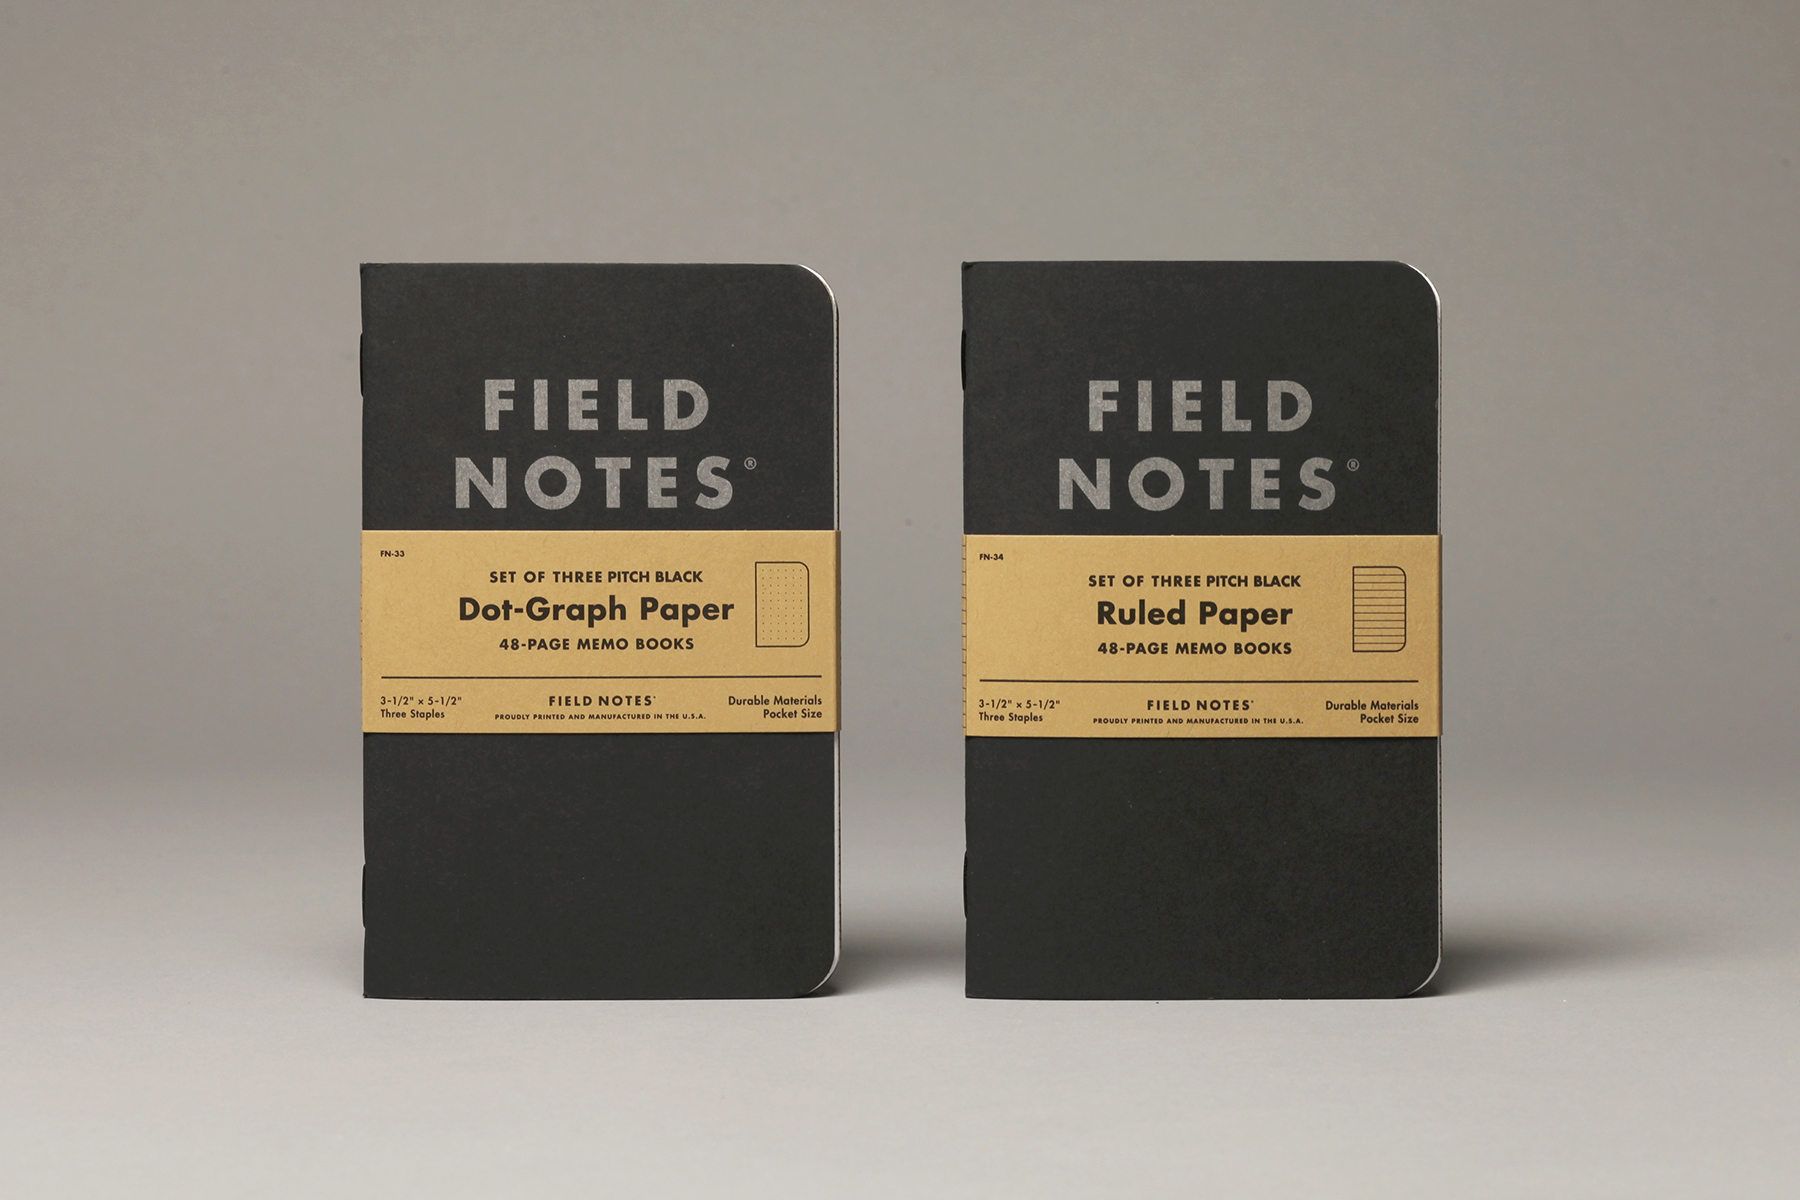 Field Notes, Pitch Black, Notizhefte, schwarzer Einband, zwei Lineaturen,